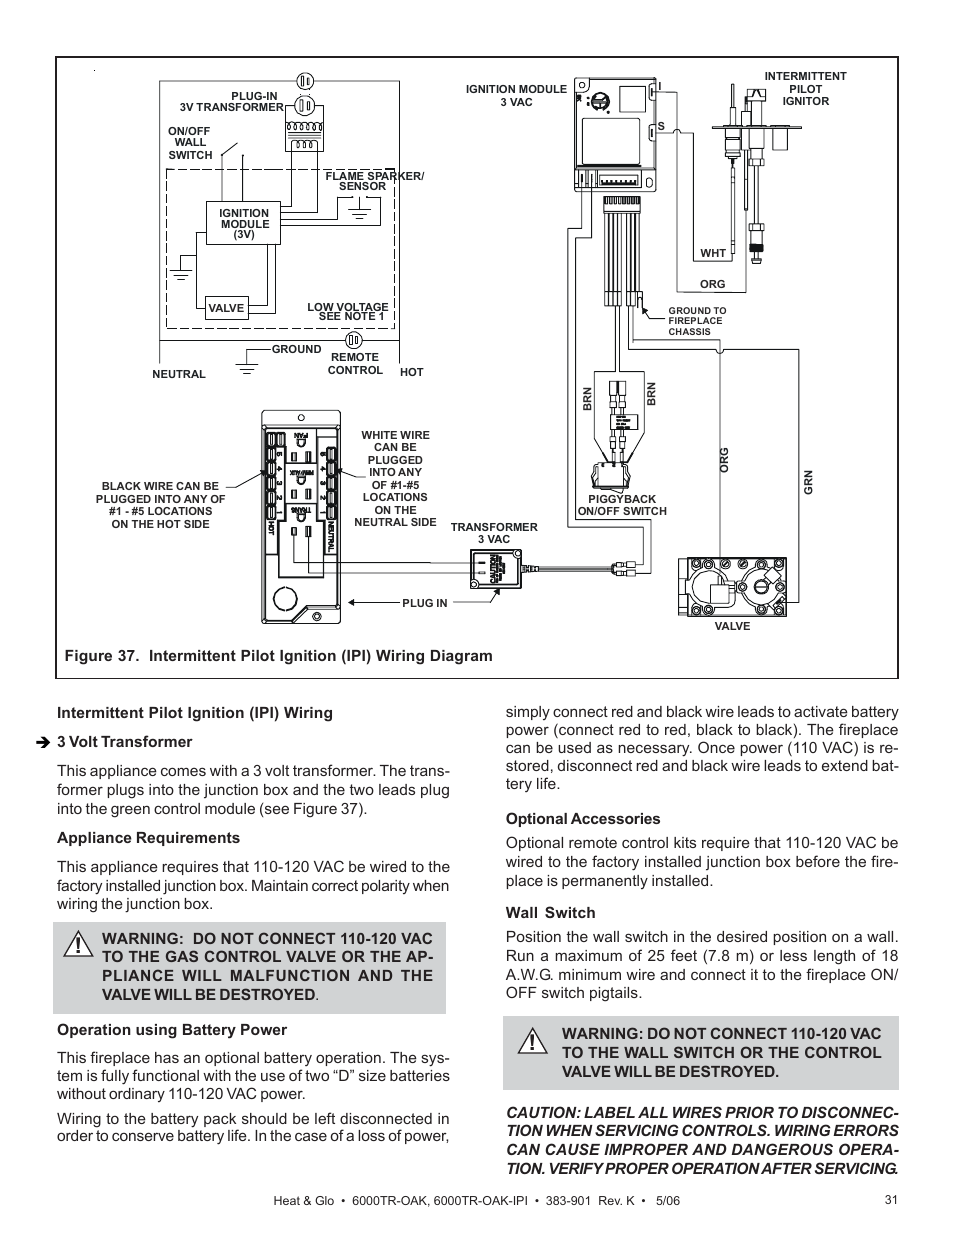 hight resolution of heat glo fireplace 6000tr oak user manual page 27 31 also for 6000tr oak ipi